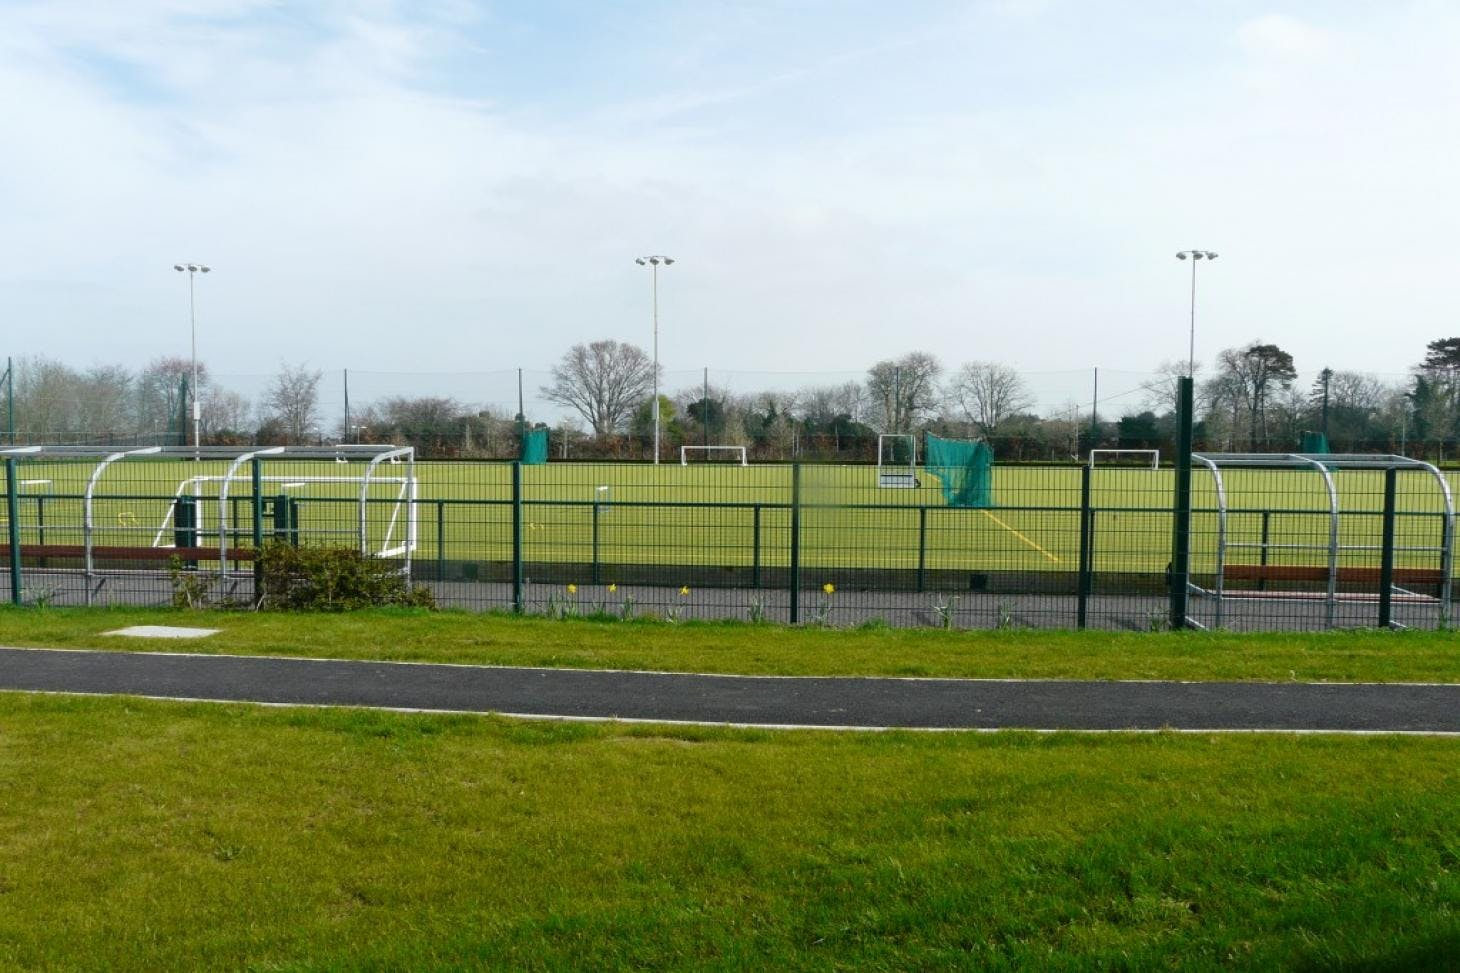 St. Raphaela's Secondary School Outdoor | Astroturf hockey pitch